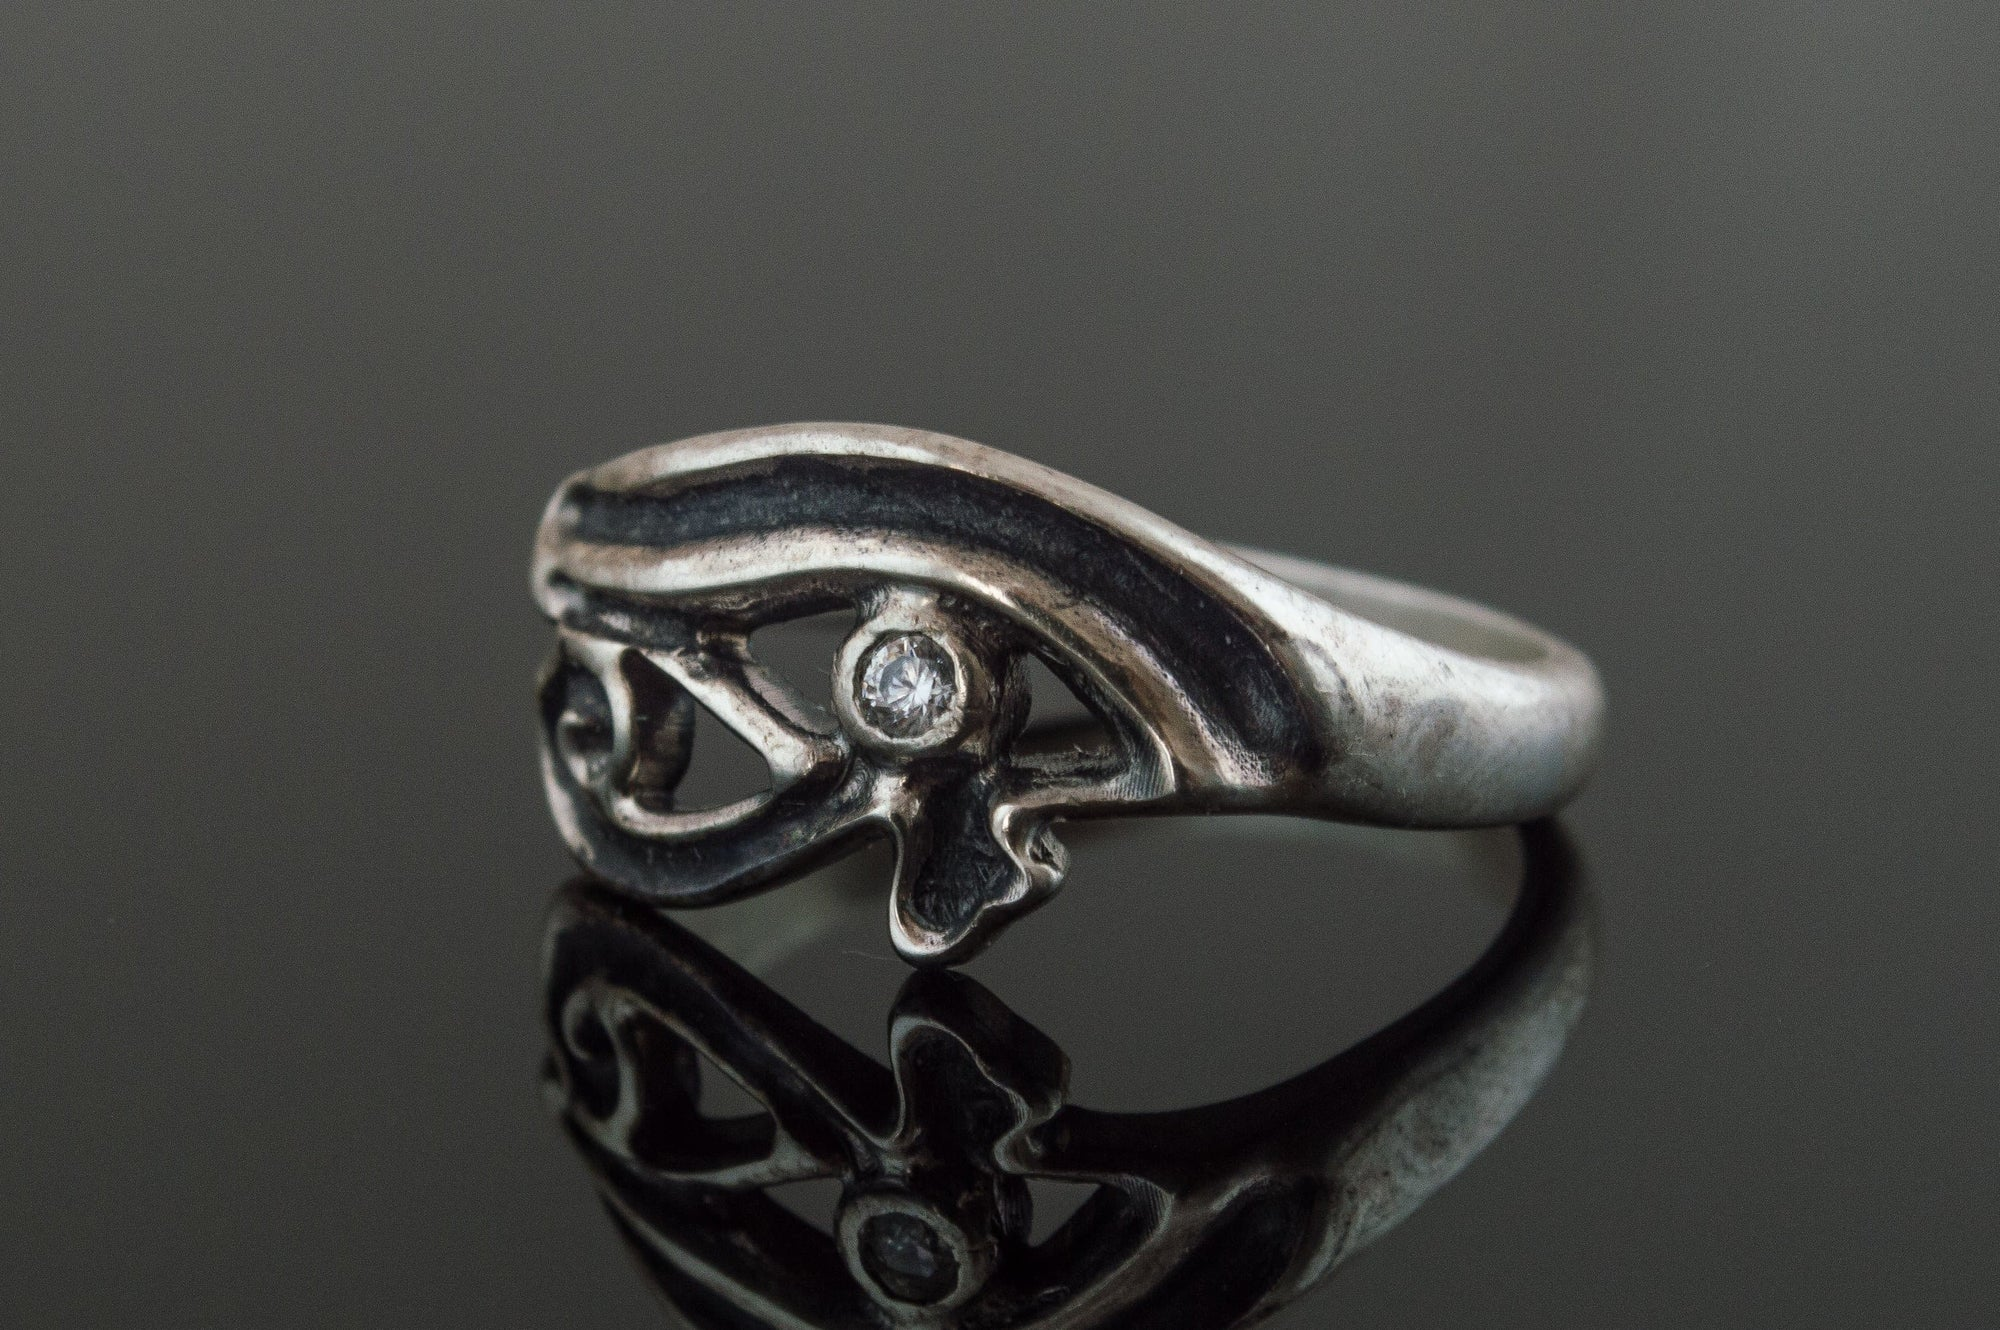 Egypt Sterling Silver Ring with Uajet Symbol Ancient Treasures Ancientreasures Viking Odin Thor Mjolnir Celtic Ancient Egypt Norse Norse Mythology